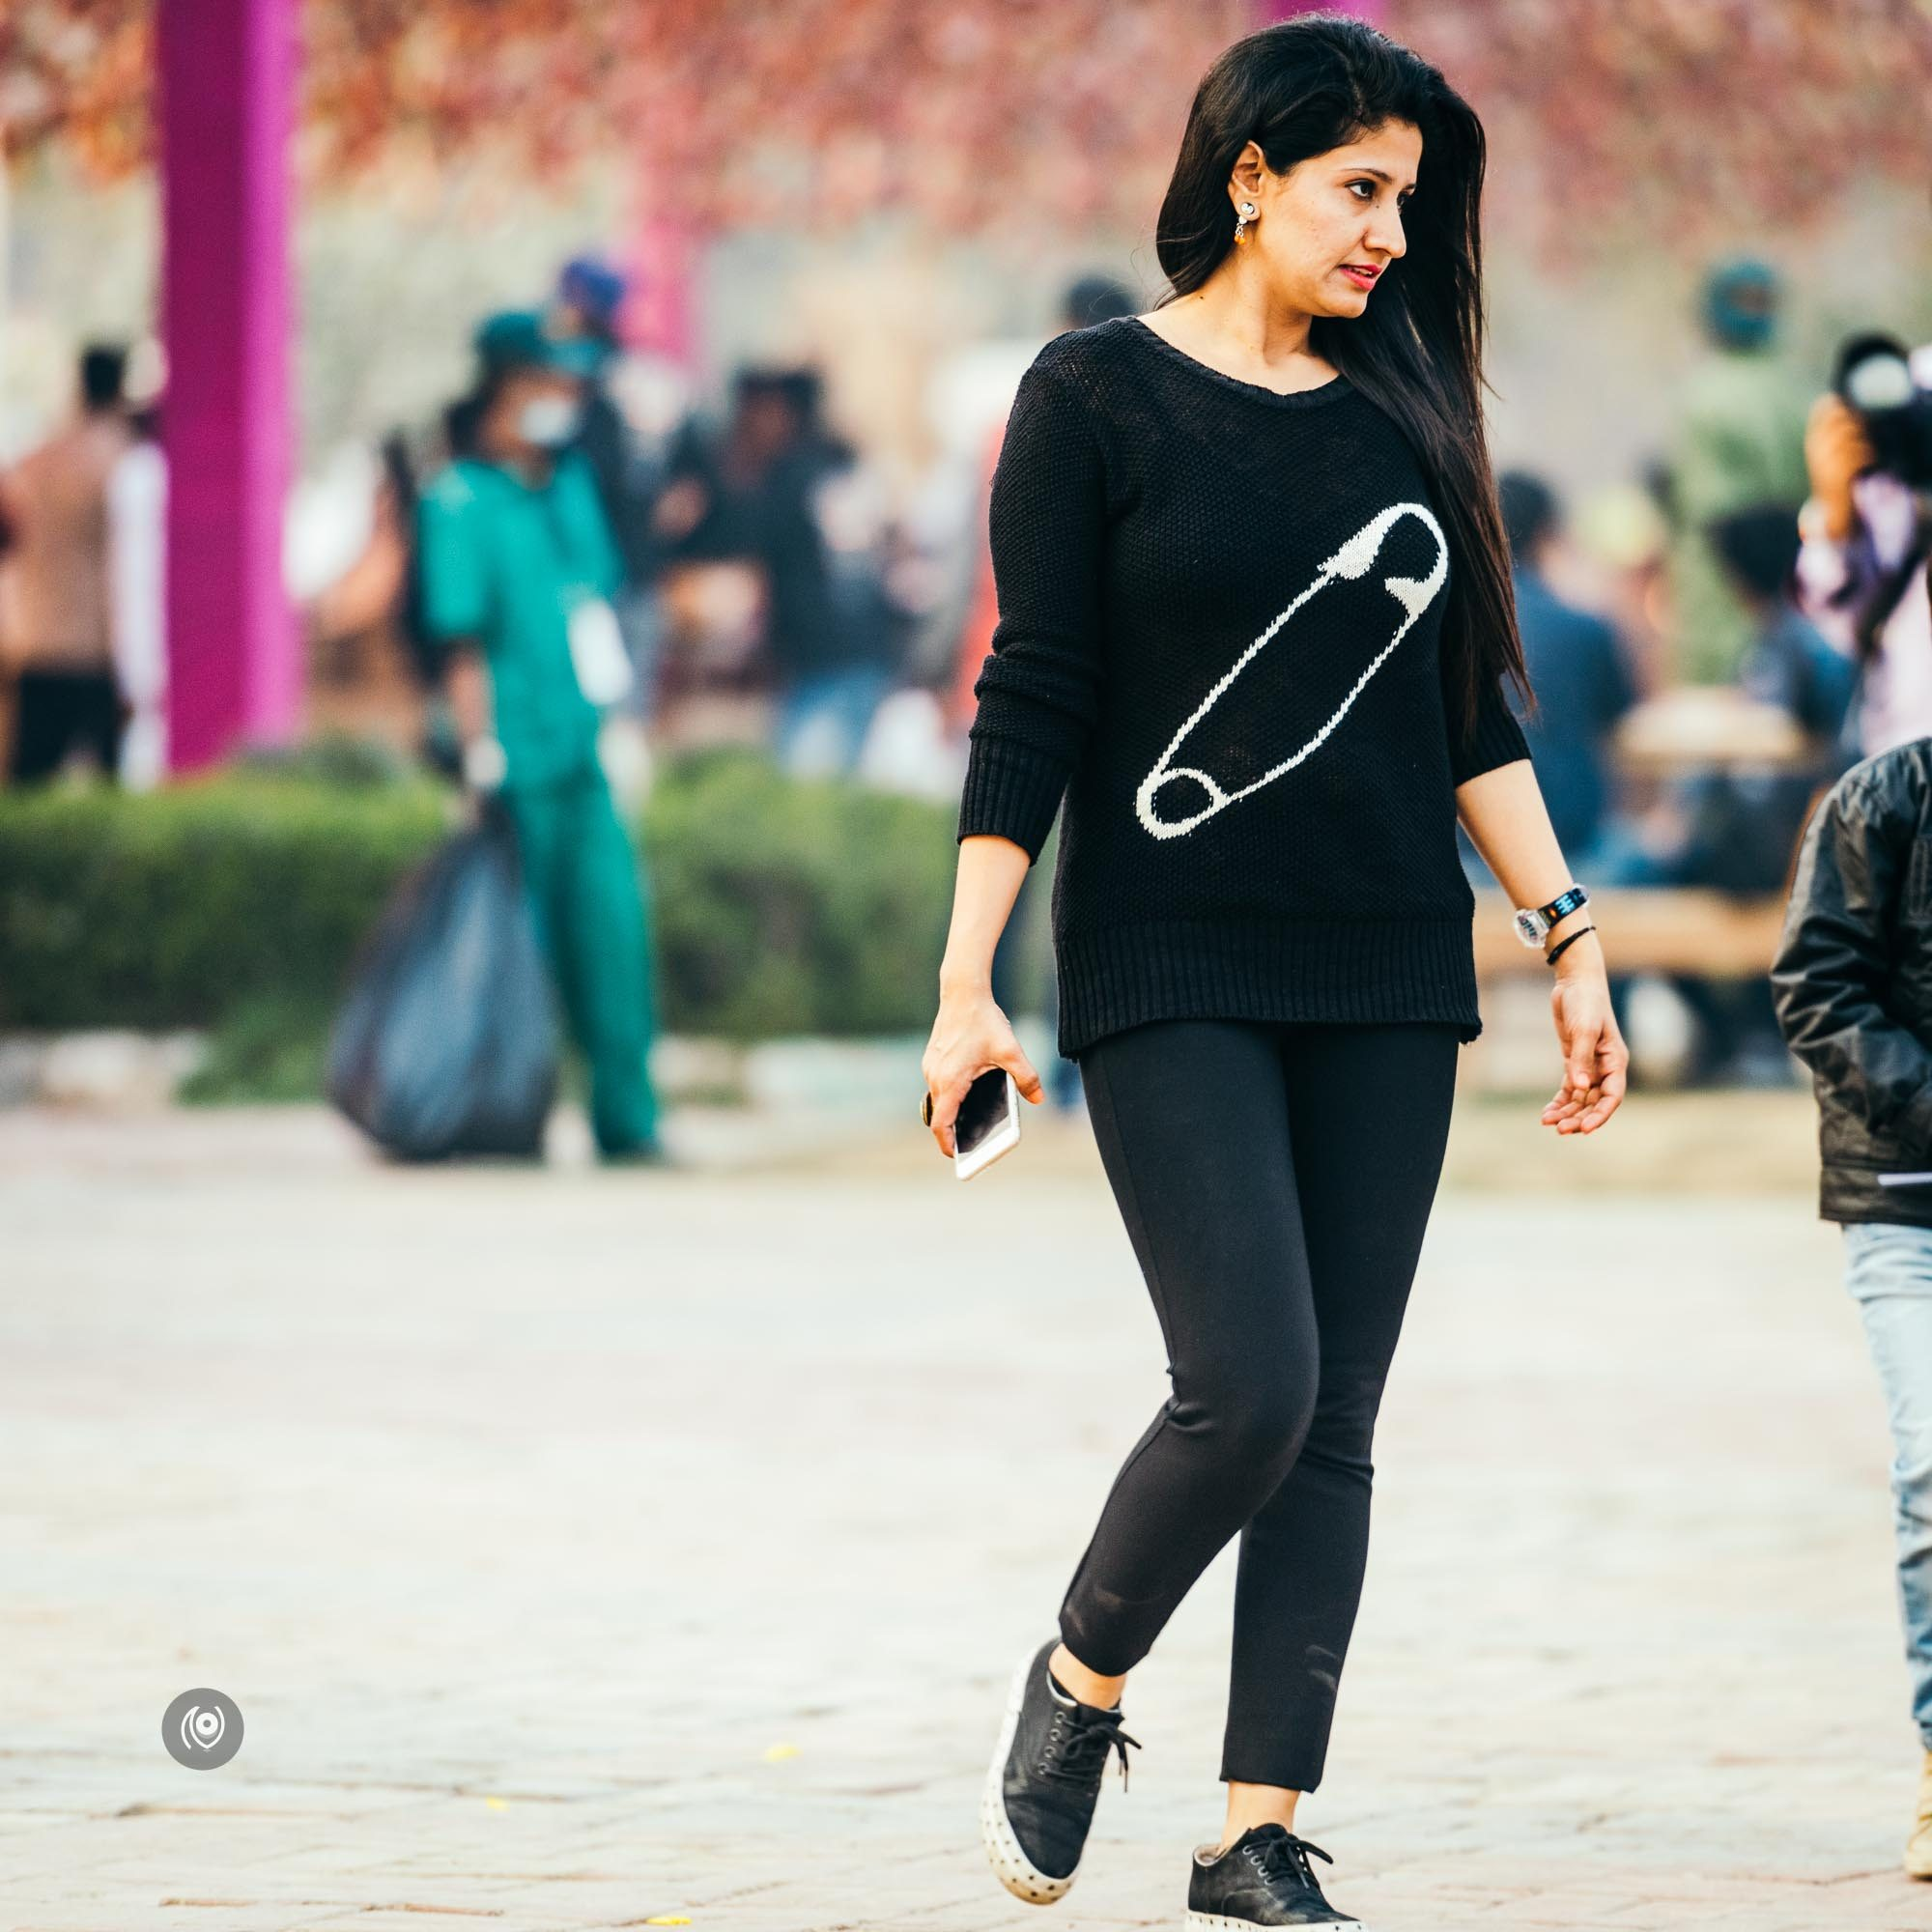 #EyesForStreetStyle, #NewDelhi, Naina.co, Luxury Photographer, Lifestyle Photographer, Luxury Blogger, Lifestyle Blogger, Experience Collector, Indian Street Style, Street Style Photography, India, Street Style